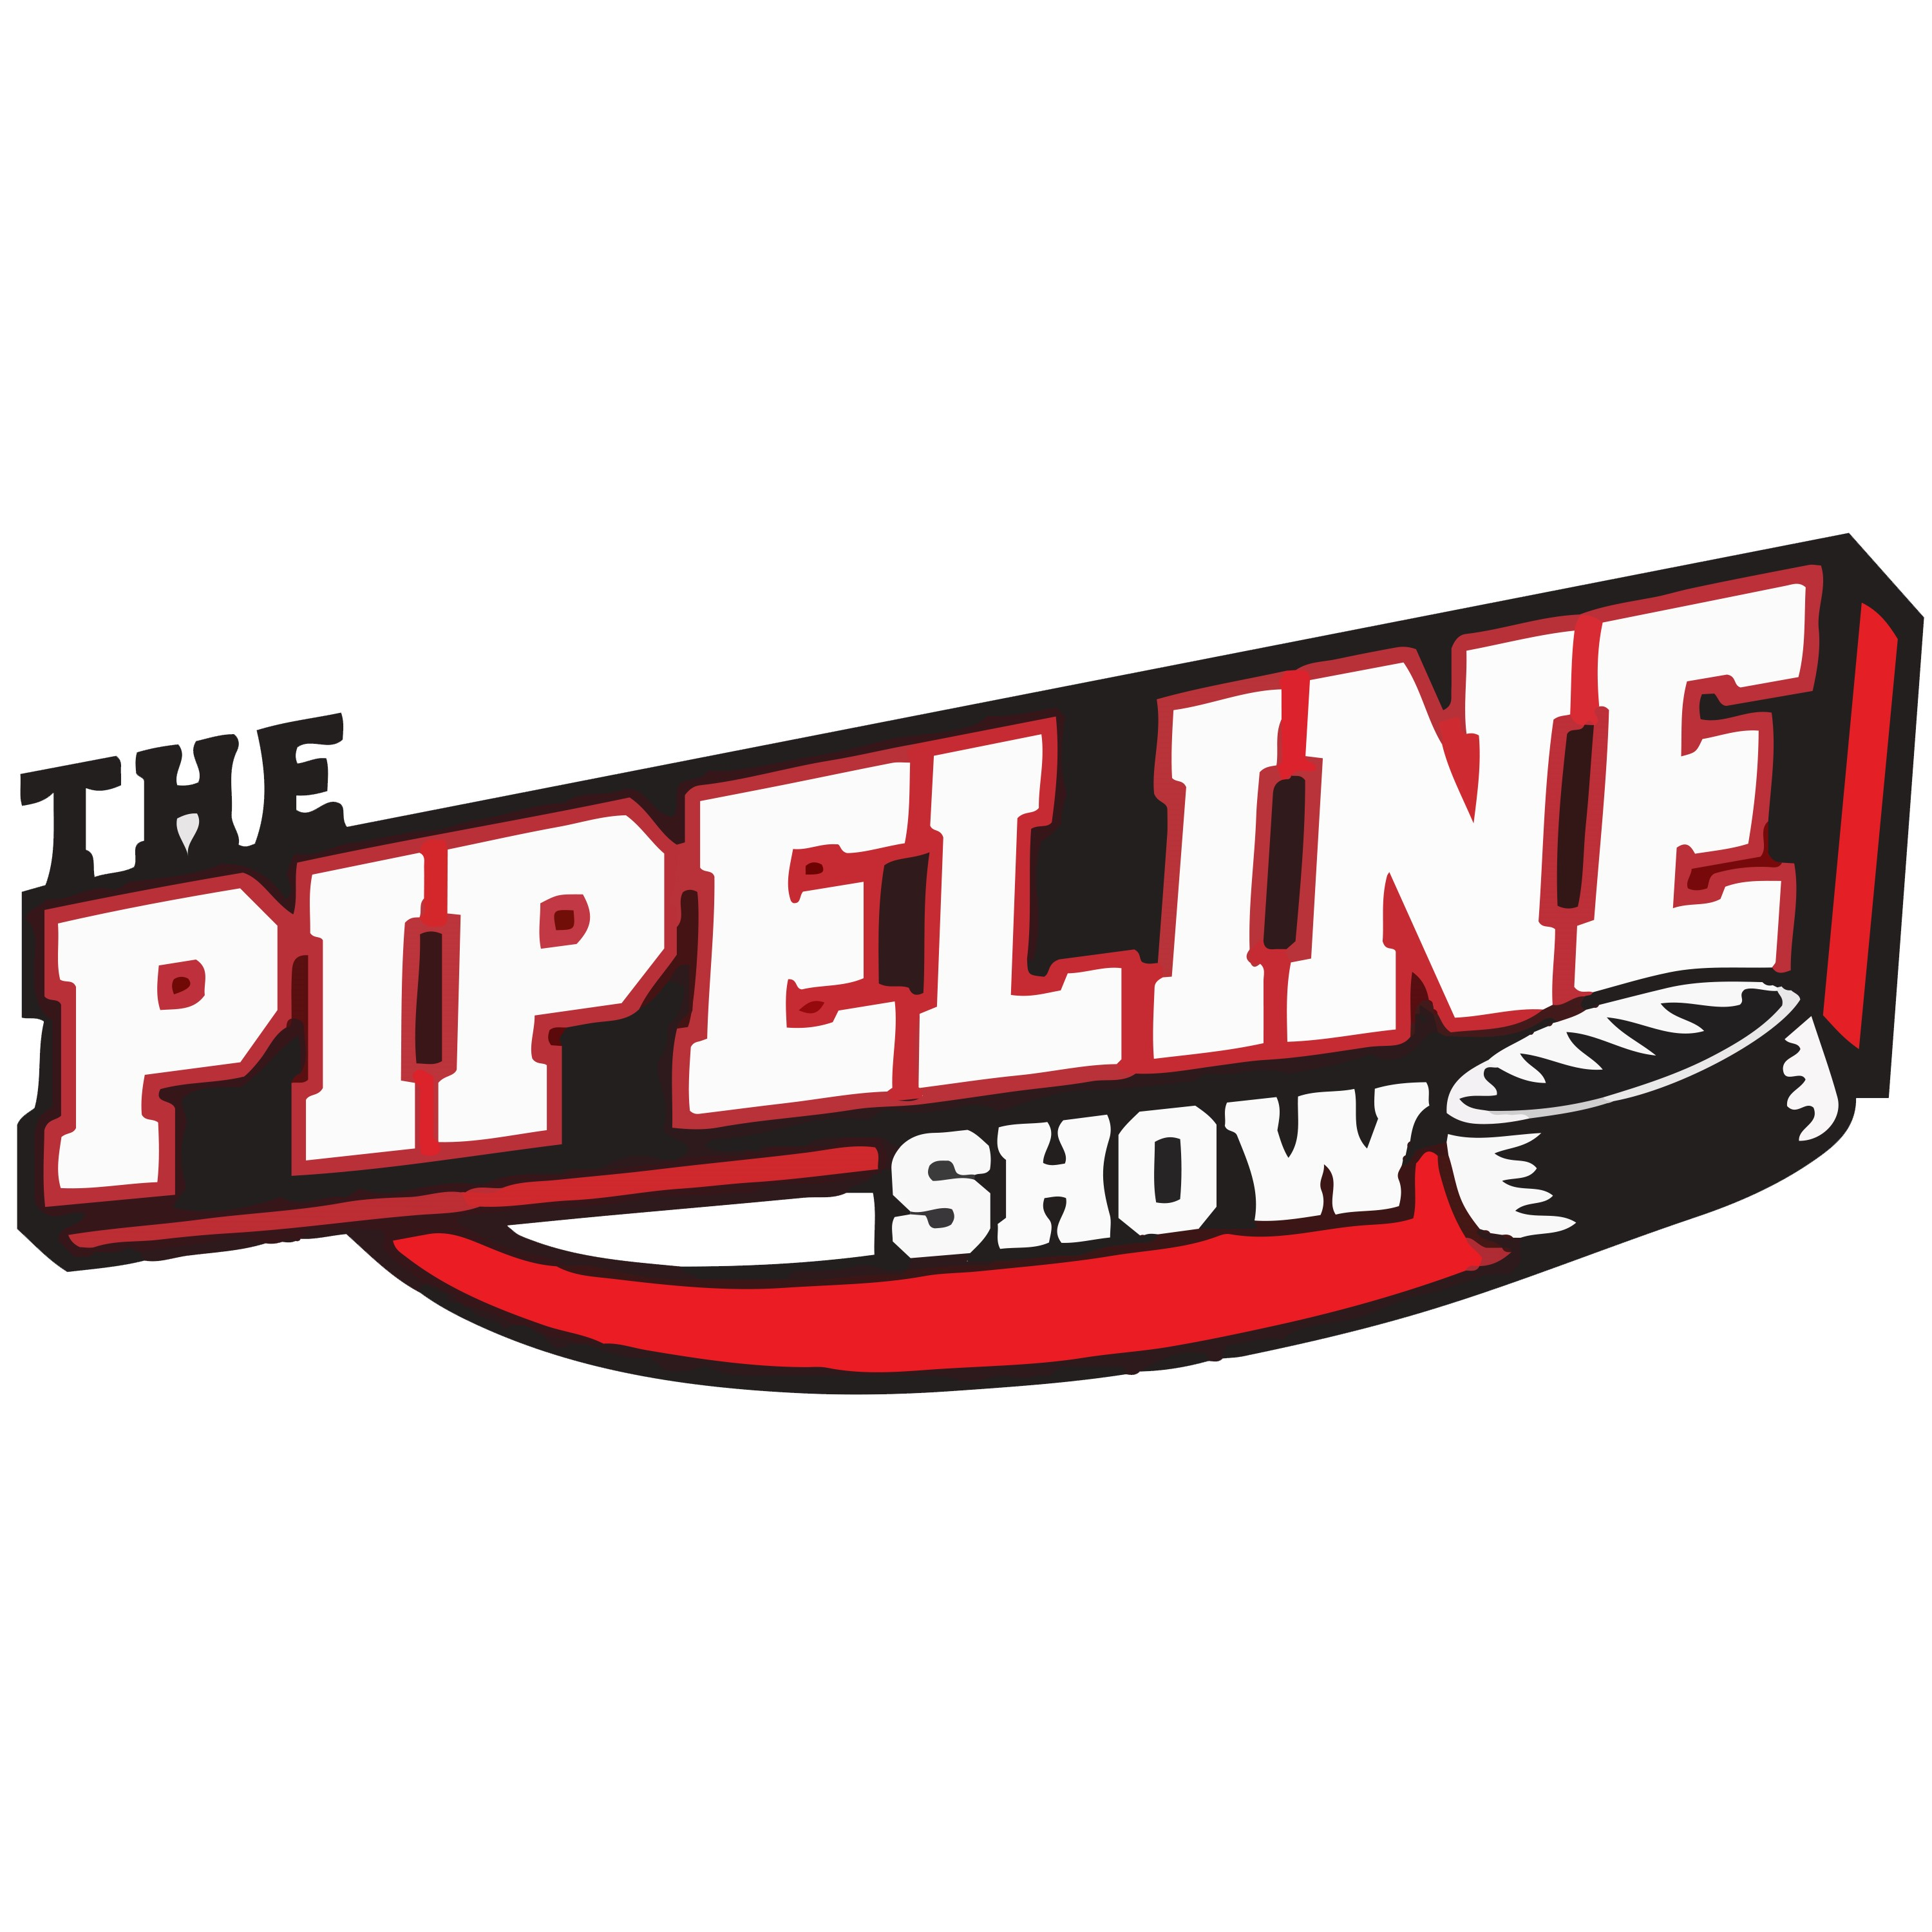 Pipeline Show Media RSS Feed by The Pipeline Show on Apple Podcasts 409d45a28